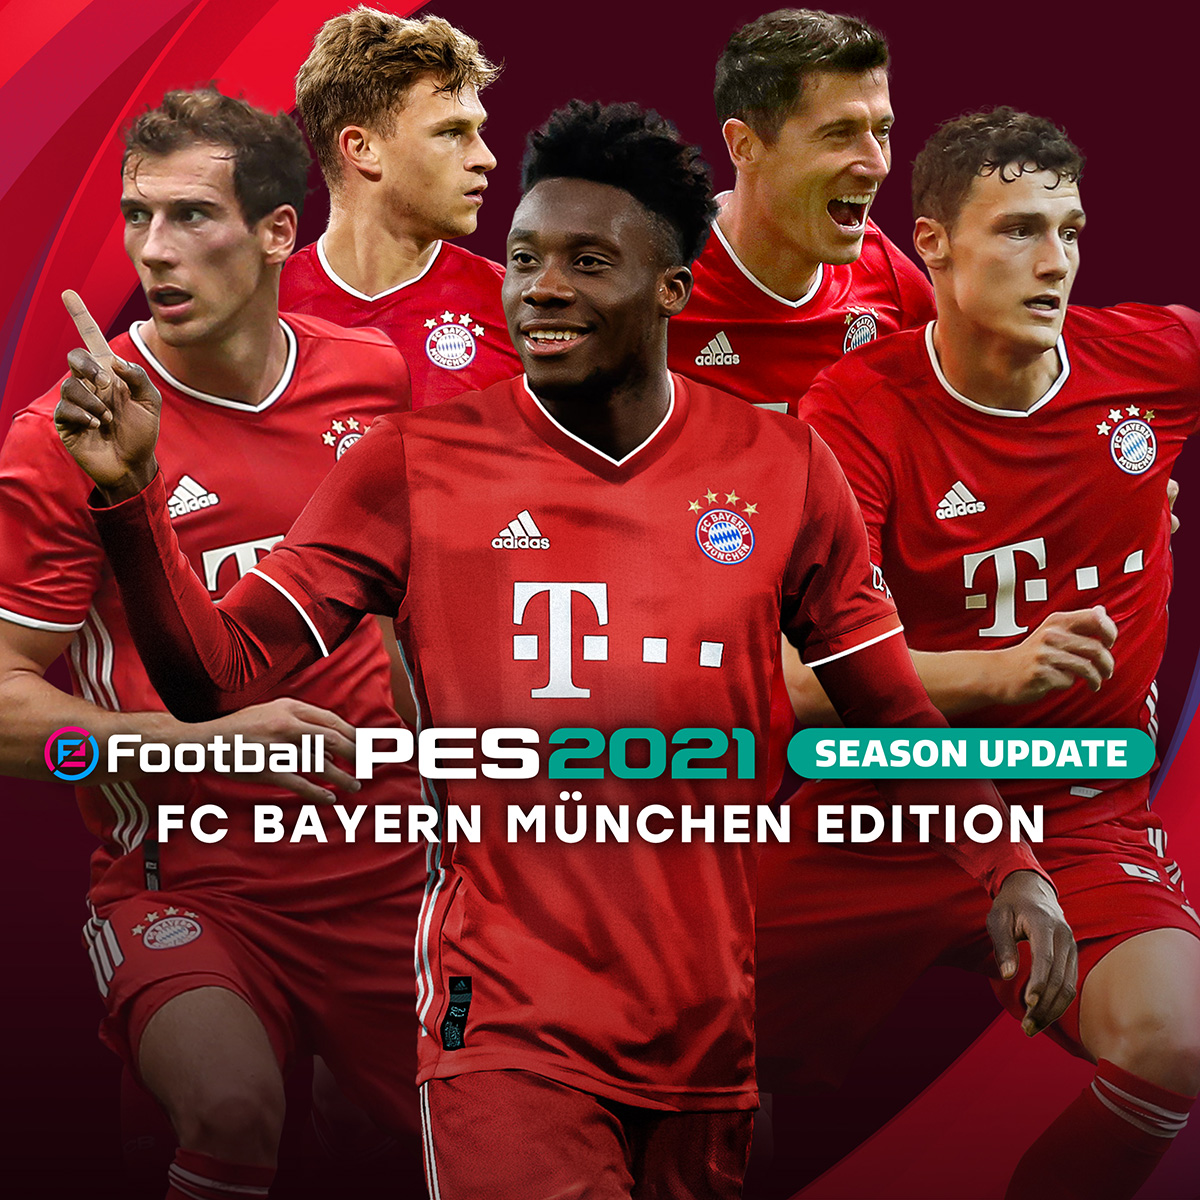 Order | PES - eFootball PES 2021 SEASON UPDATE Official Site